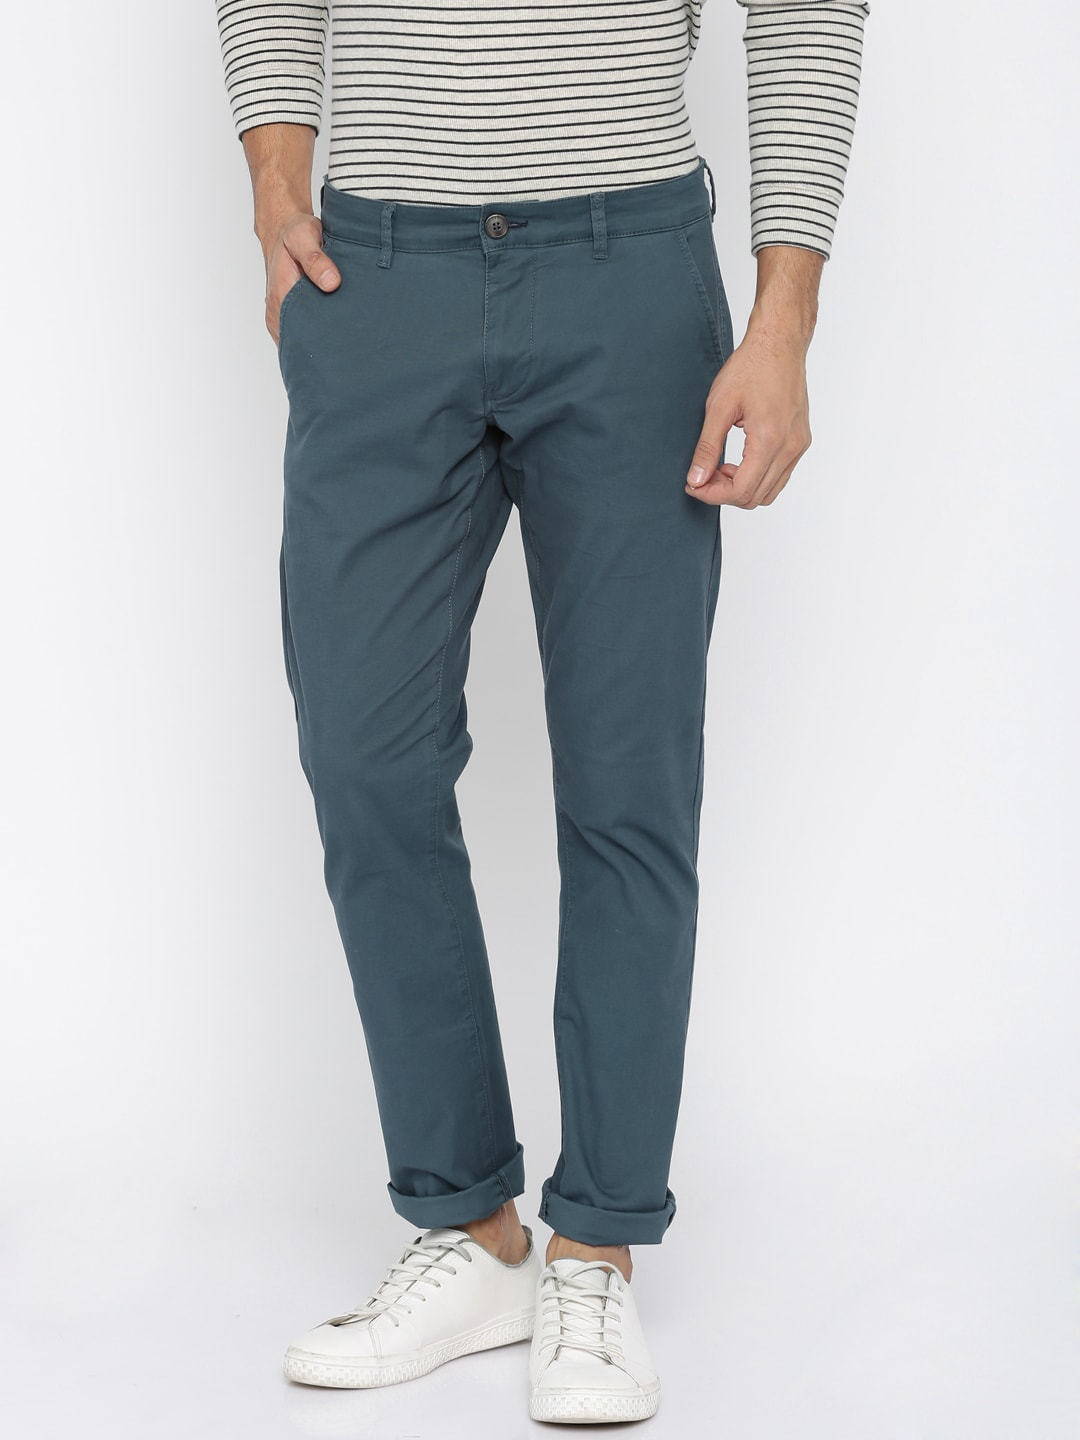 SELECTED Men Teal Blue Chinos Trousers